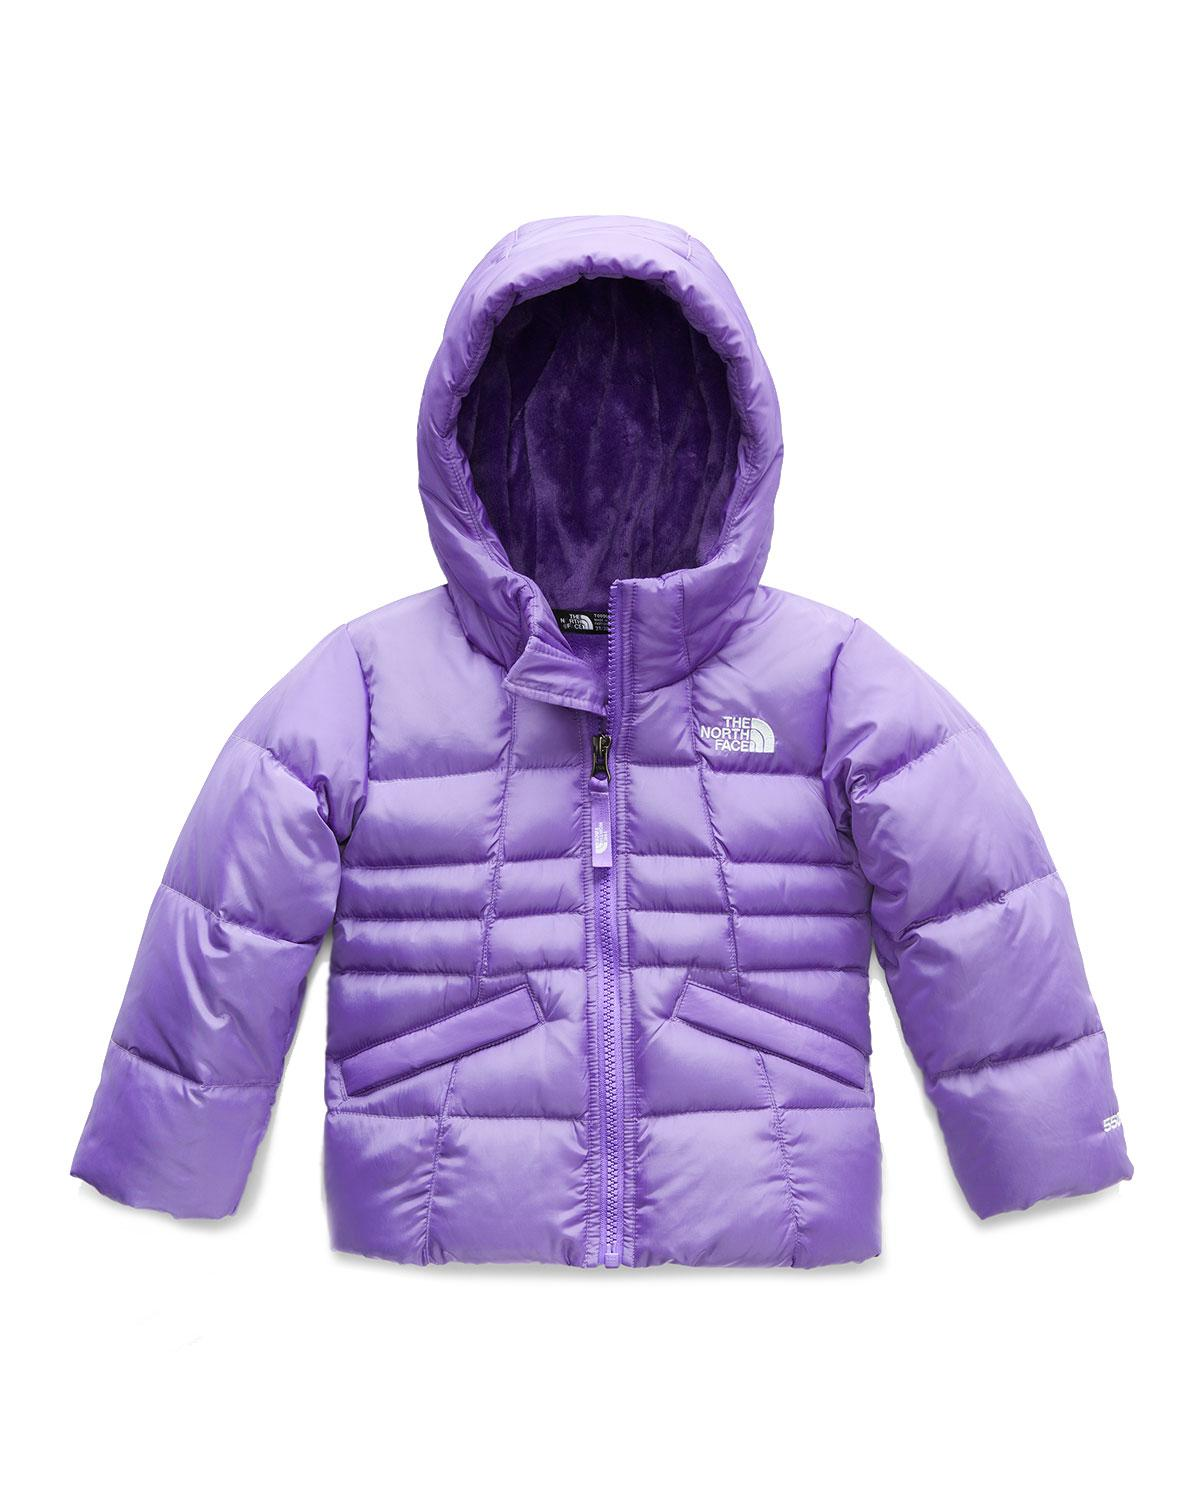 080f62532268 Lyst - The North Face Moondoggy 2.0 Quilted Hooded Jacket in Purple